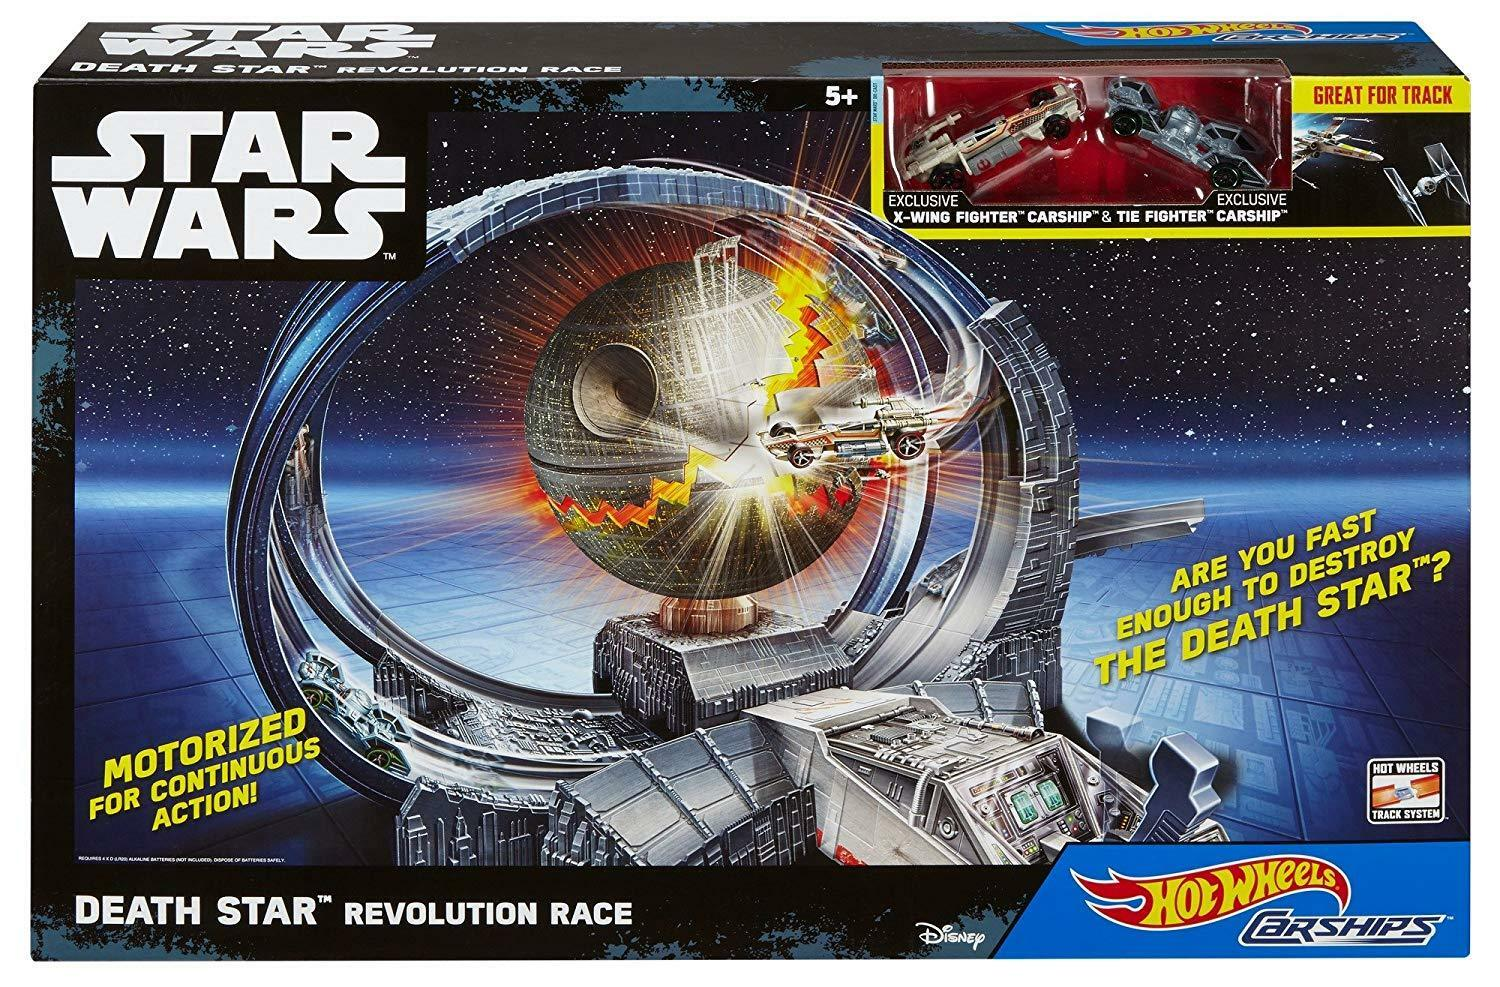 Star wars todesstern revolution rennen hotwheels new in box